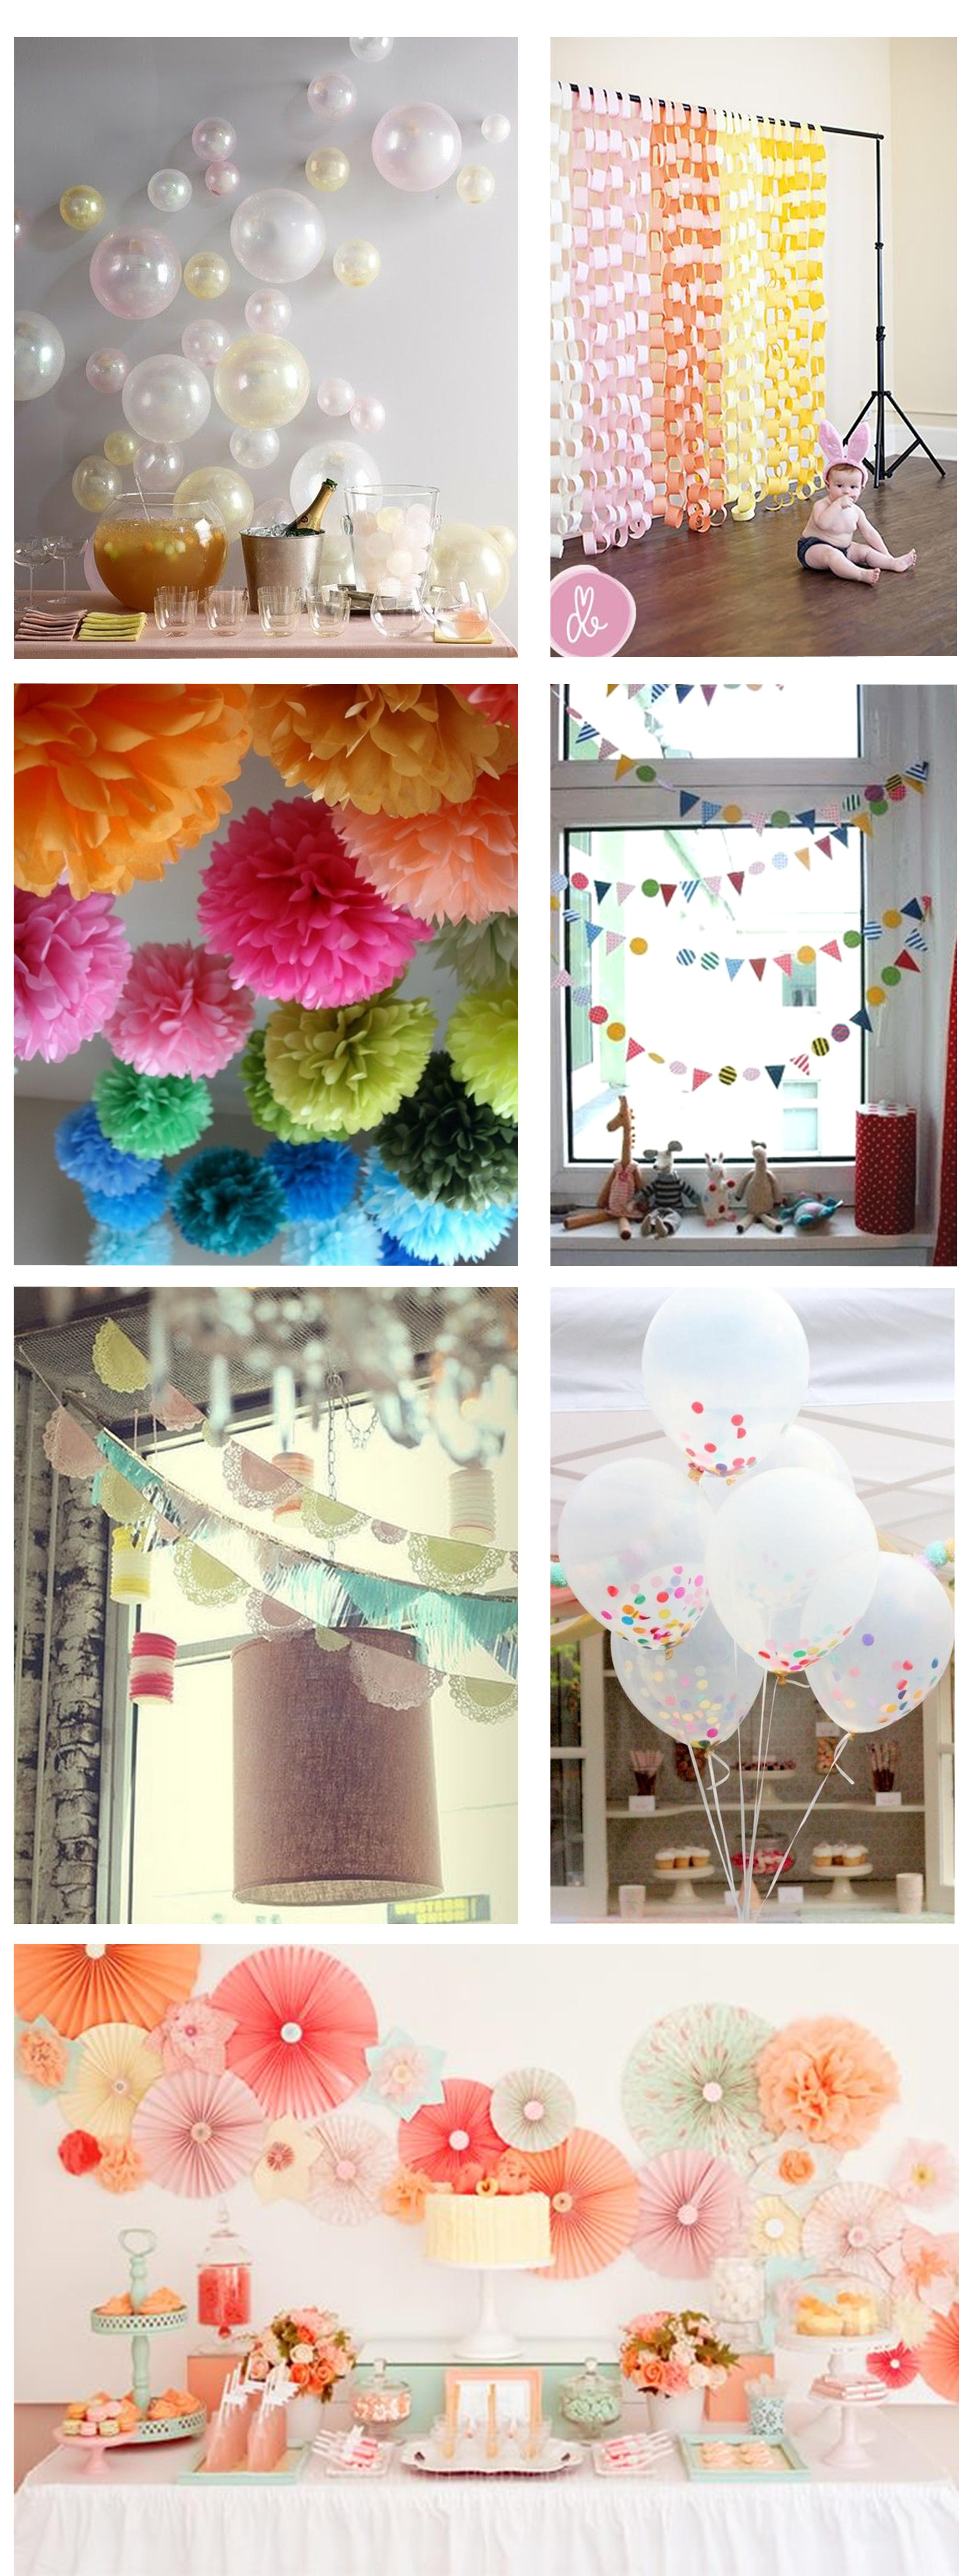 Best ideas about DIY Birthday Decorations . Save or Pin Ideas for home made party decorations Now.